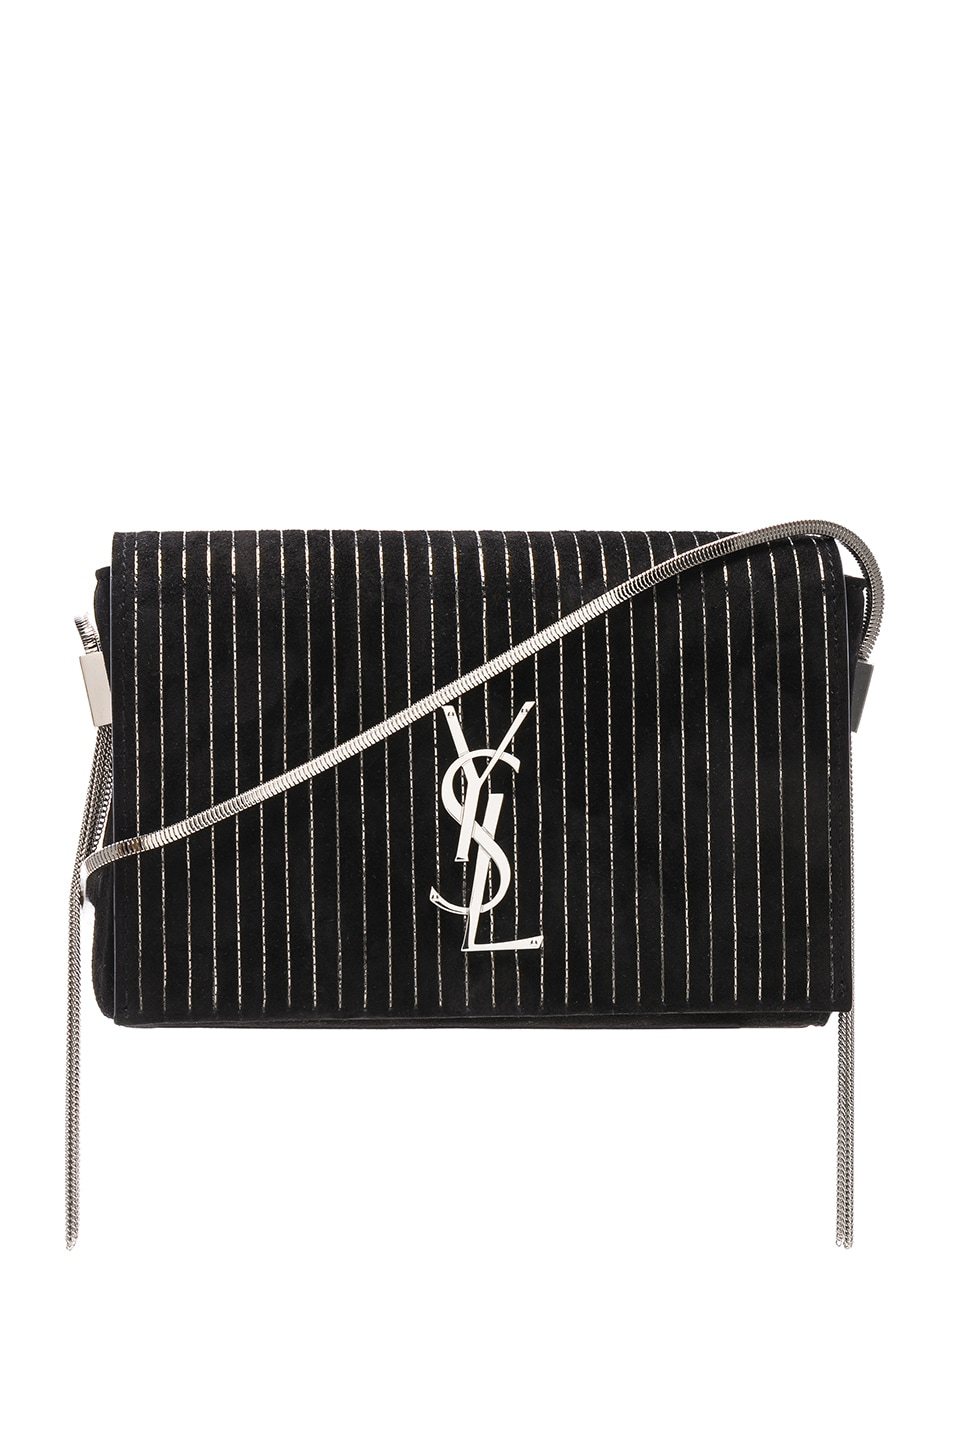 Image 1 of Saint Laurent Small Chain Studded Suede Kate Chain Bag in Black & Ruthenium